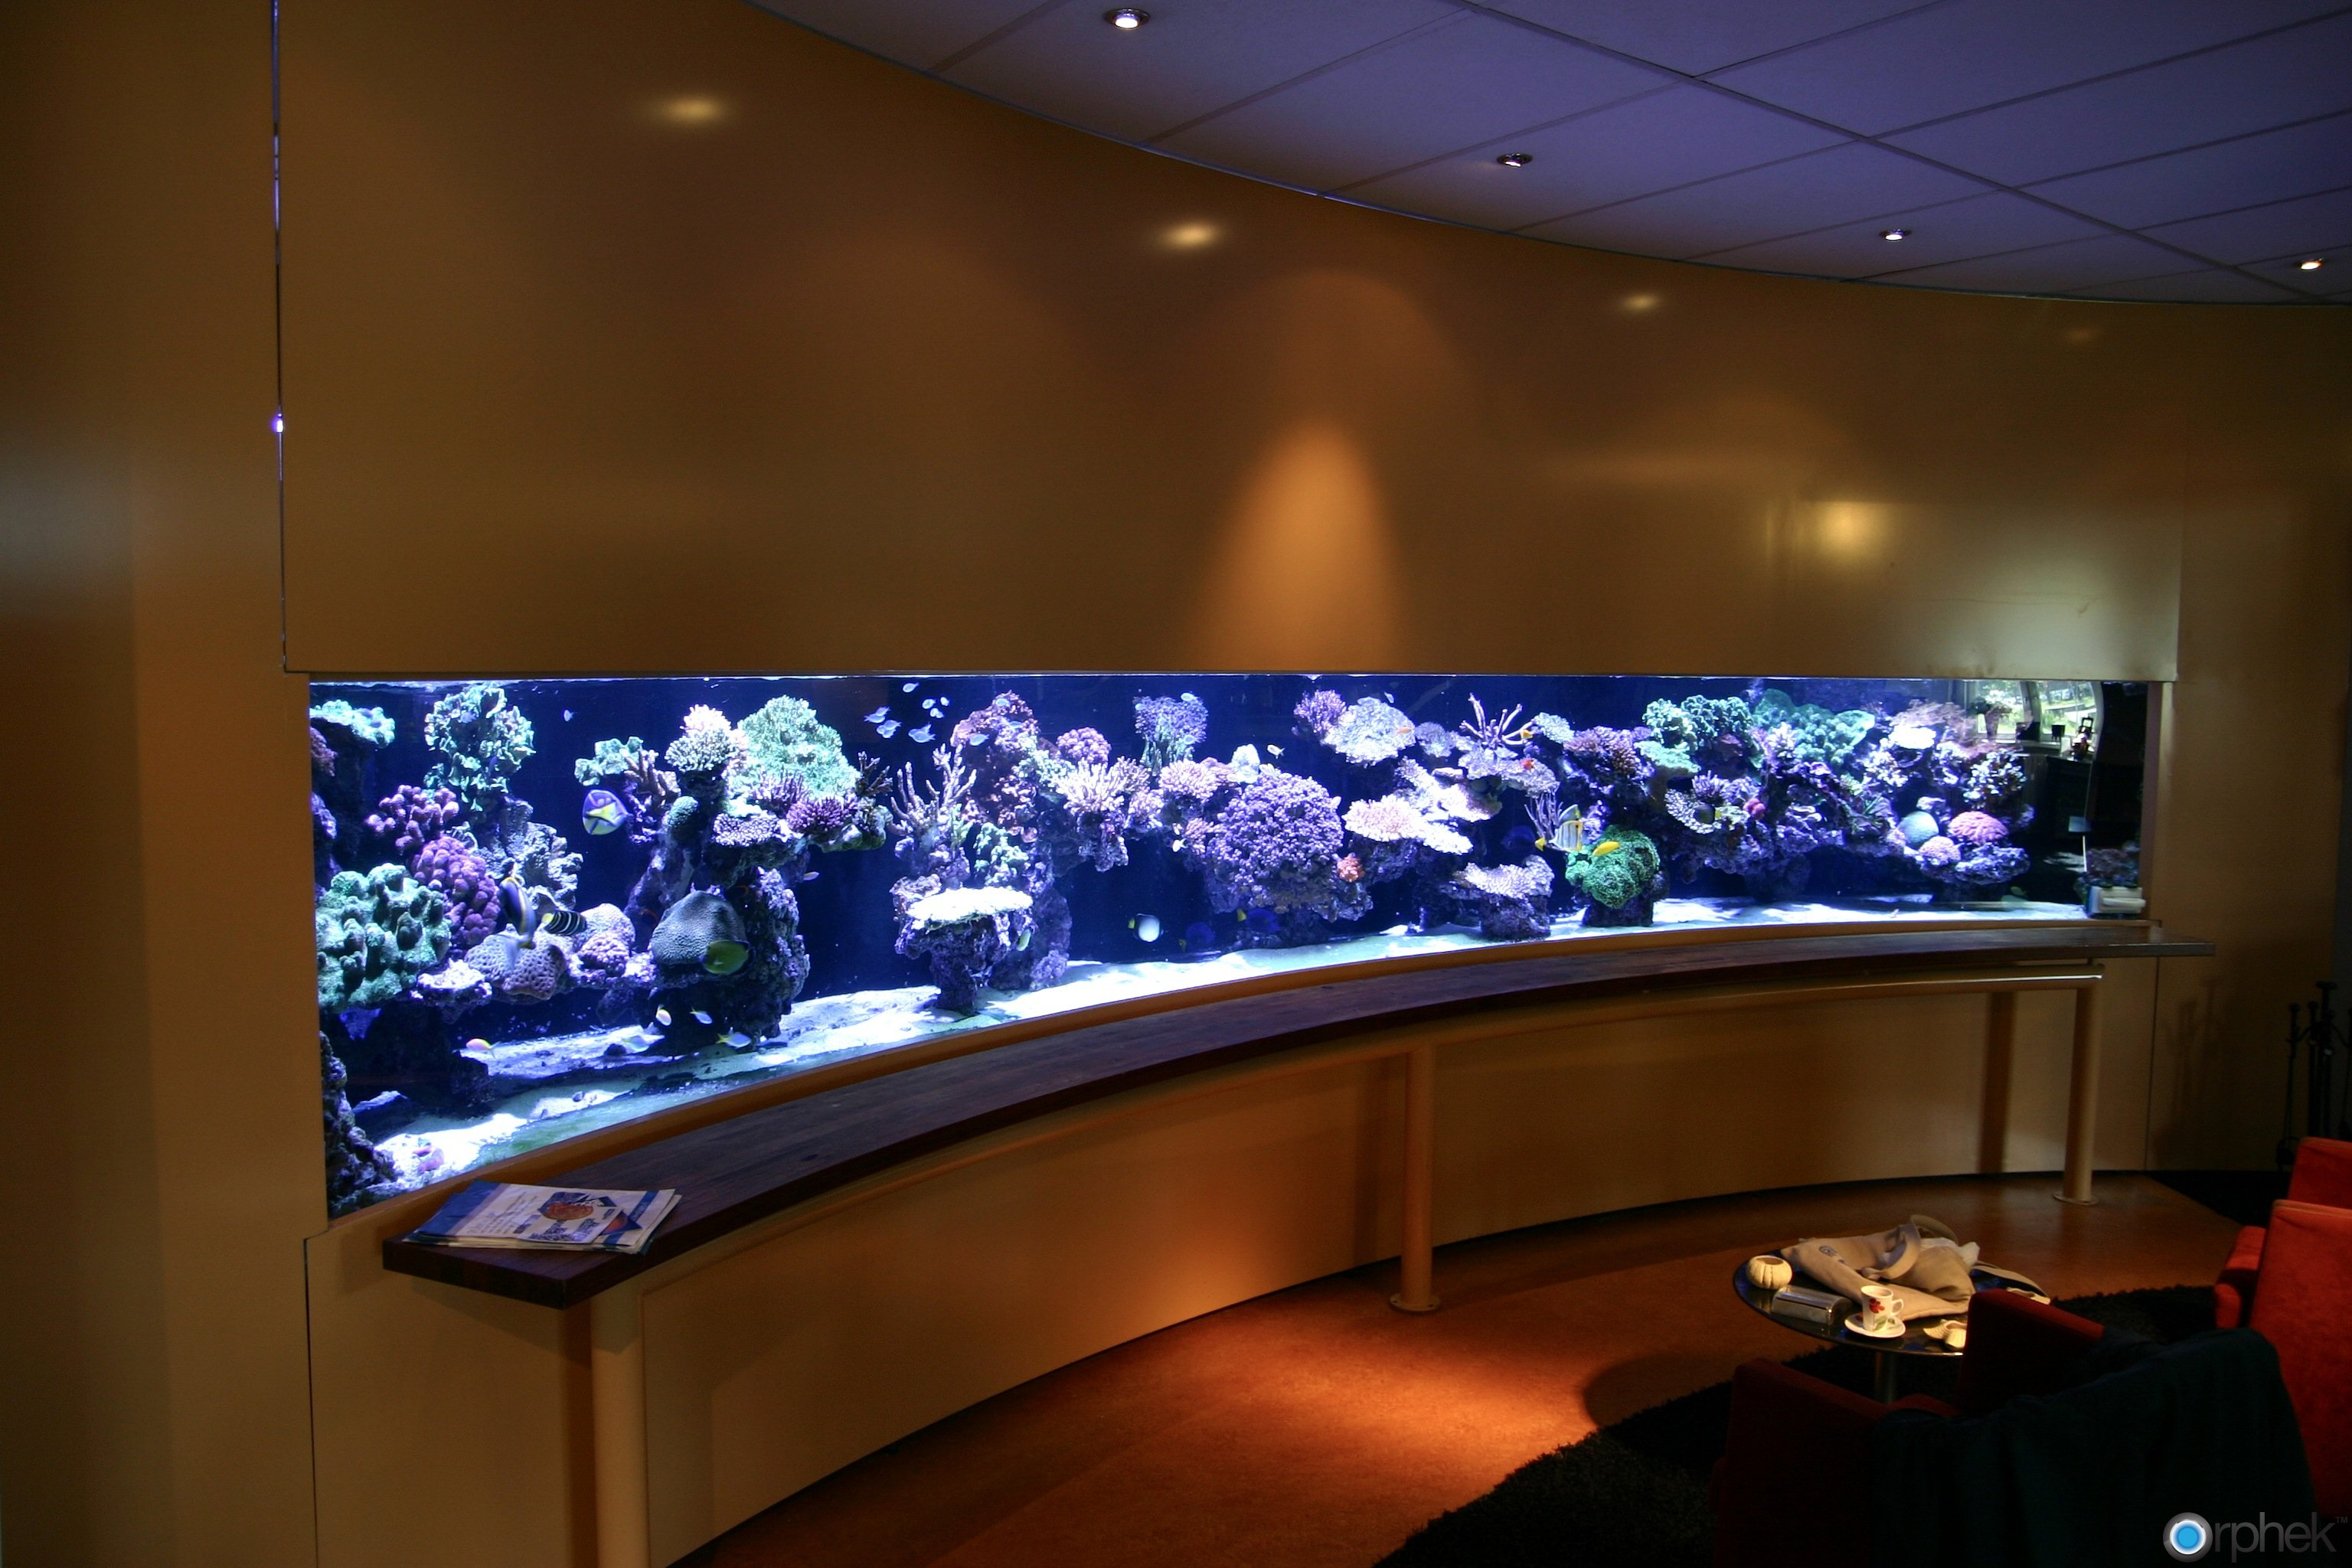 Pieter van suijlekom 39 s reef aquarium revisited for Marine fish tanks